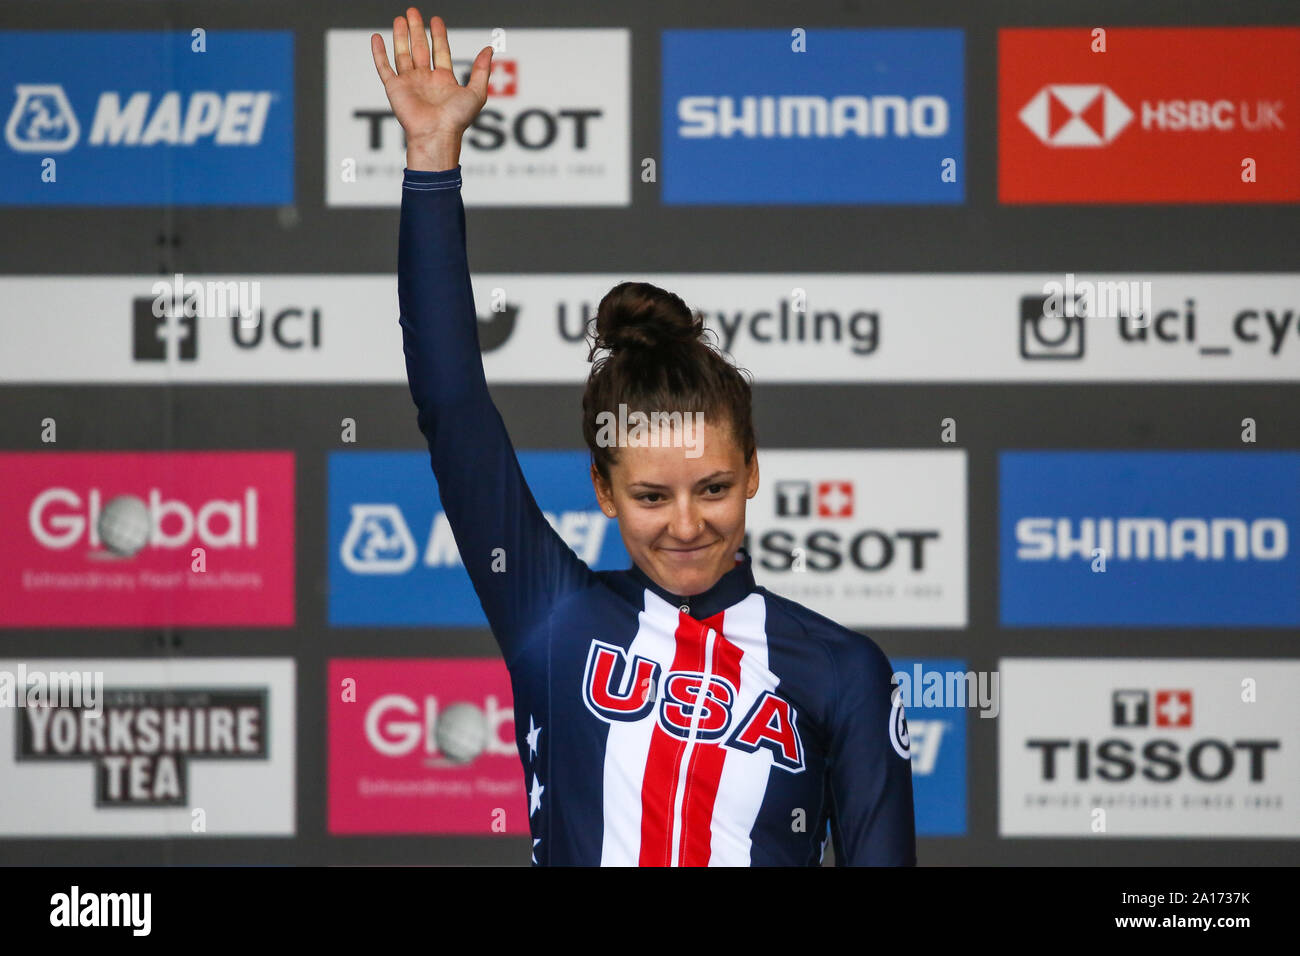 Harrogate, UK. 24th September 2019. 2019 UCI Road World Championships Womens Elite Individual Time Trial. September 24, 2019 Credit Dan-Cooke/Alamy Live News Stock Photo